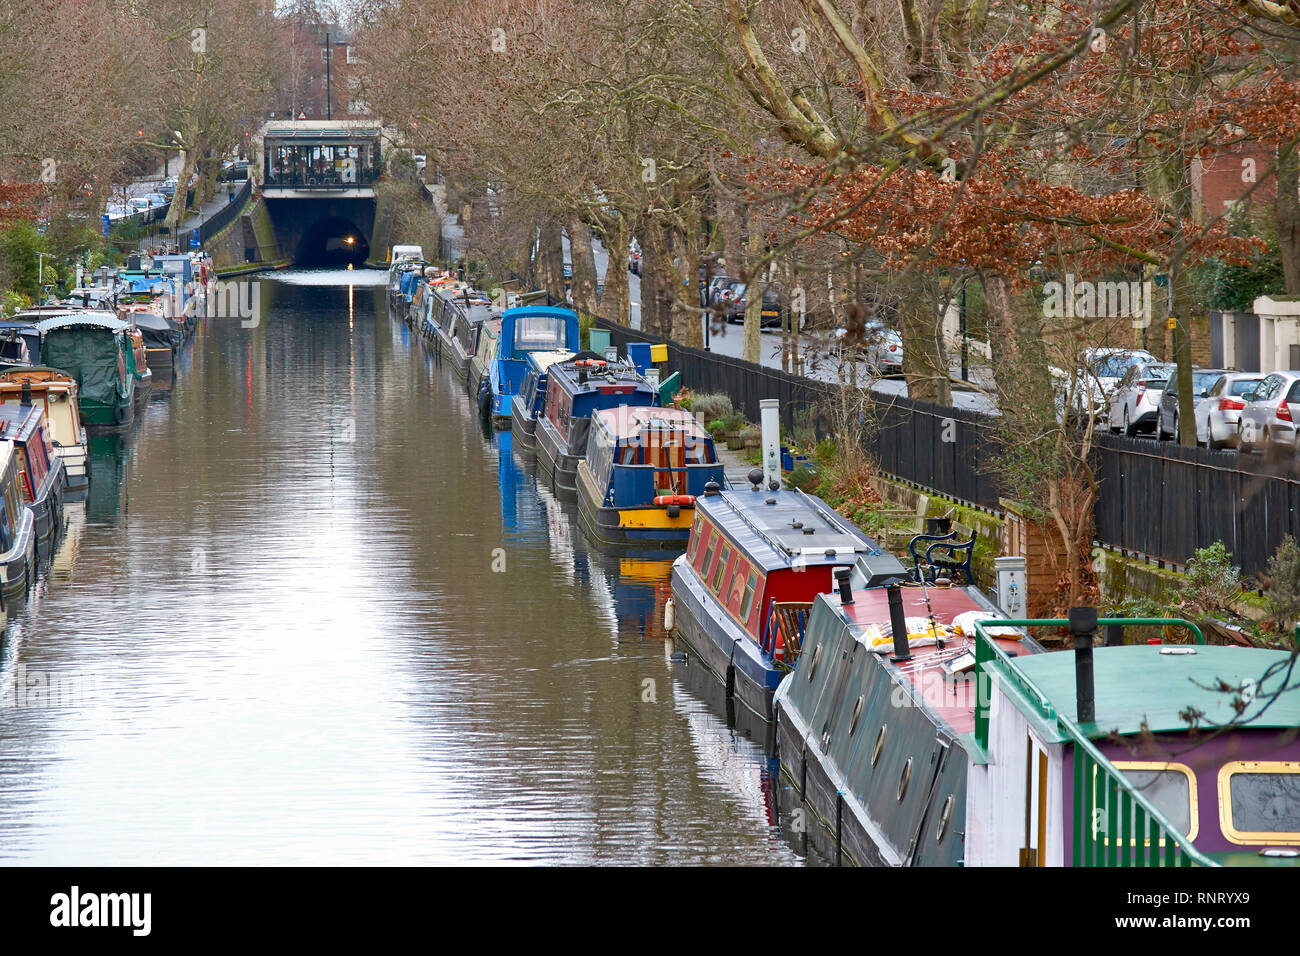 LONDON LITTLE VENICE CANAL BOATS ON THE WATER LOOKING TOWARDS A TUNNEL AND CAFE - Stock Image